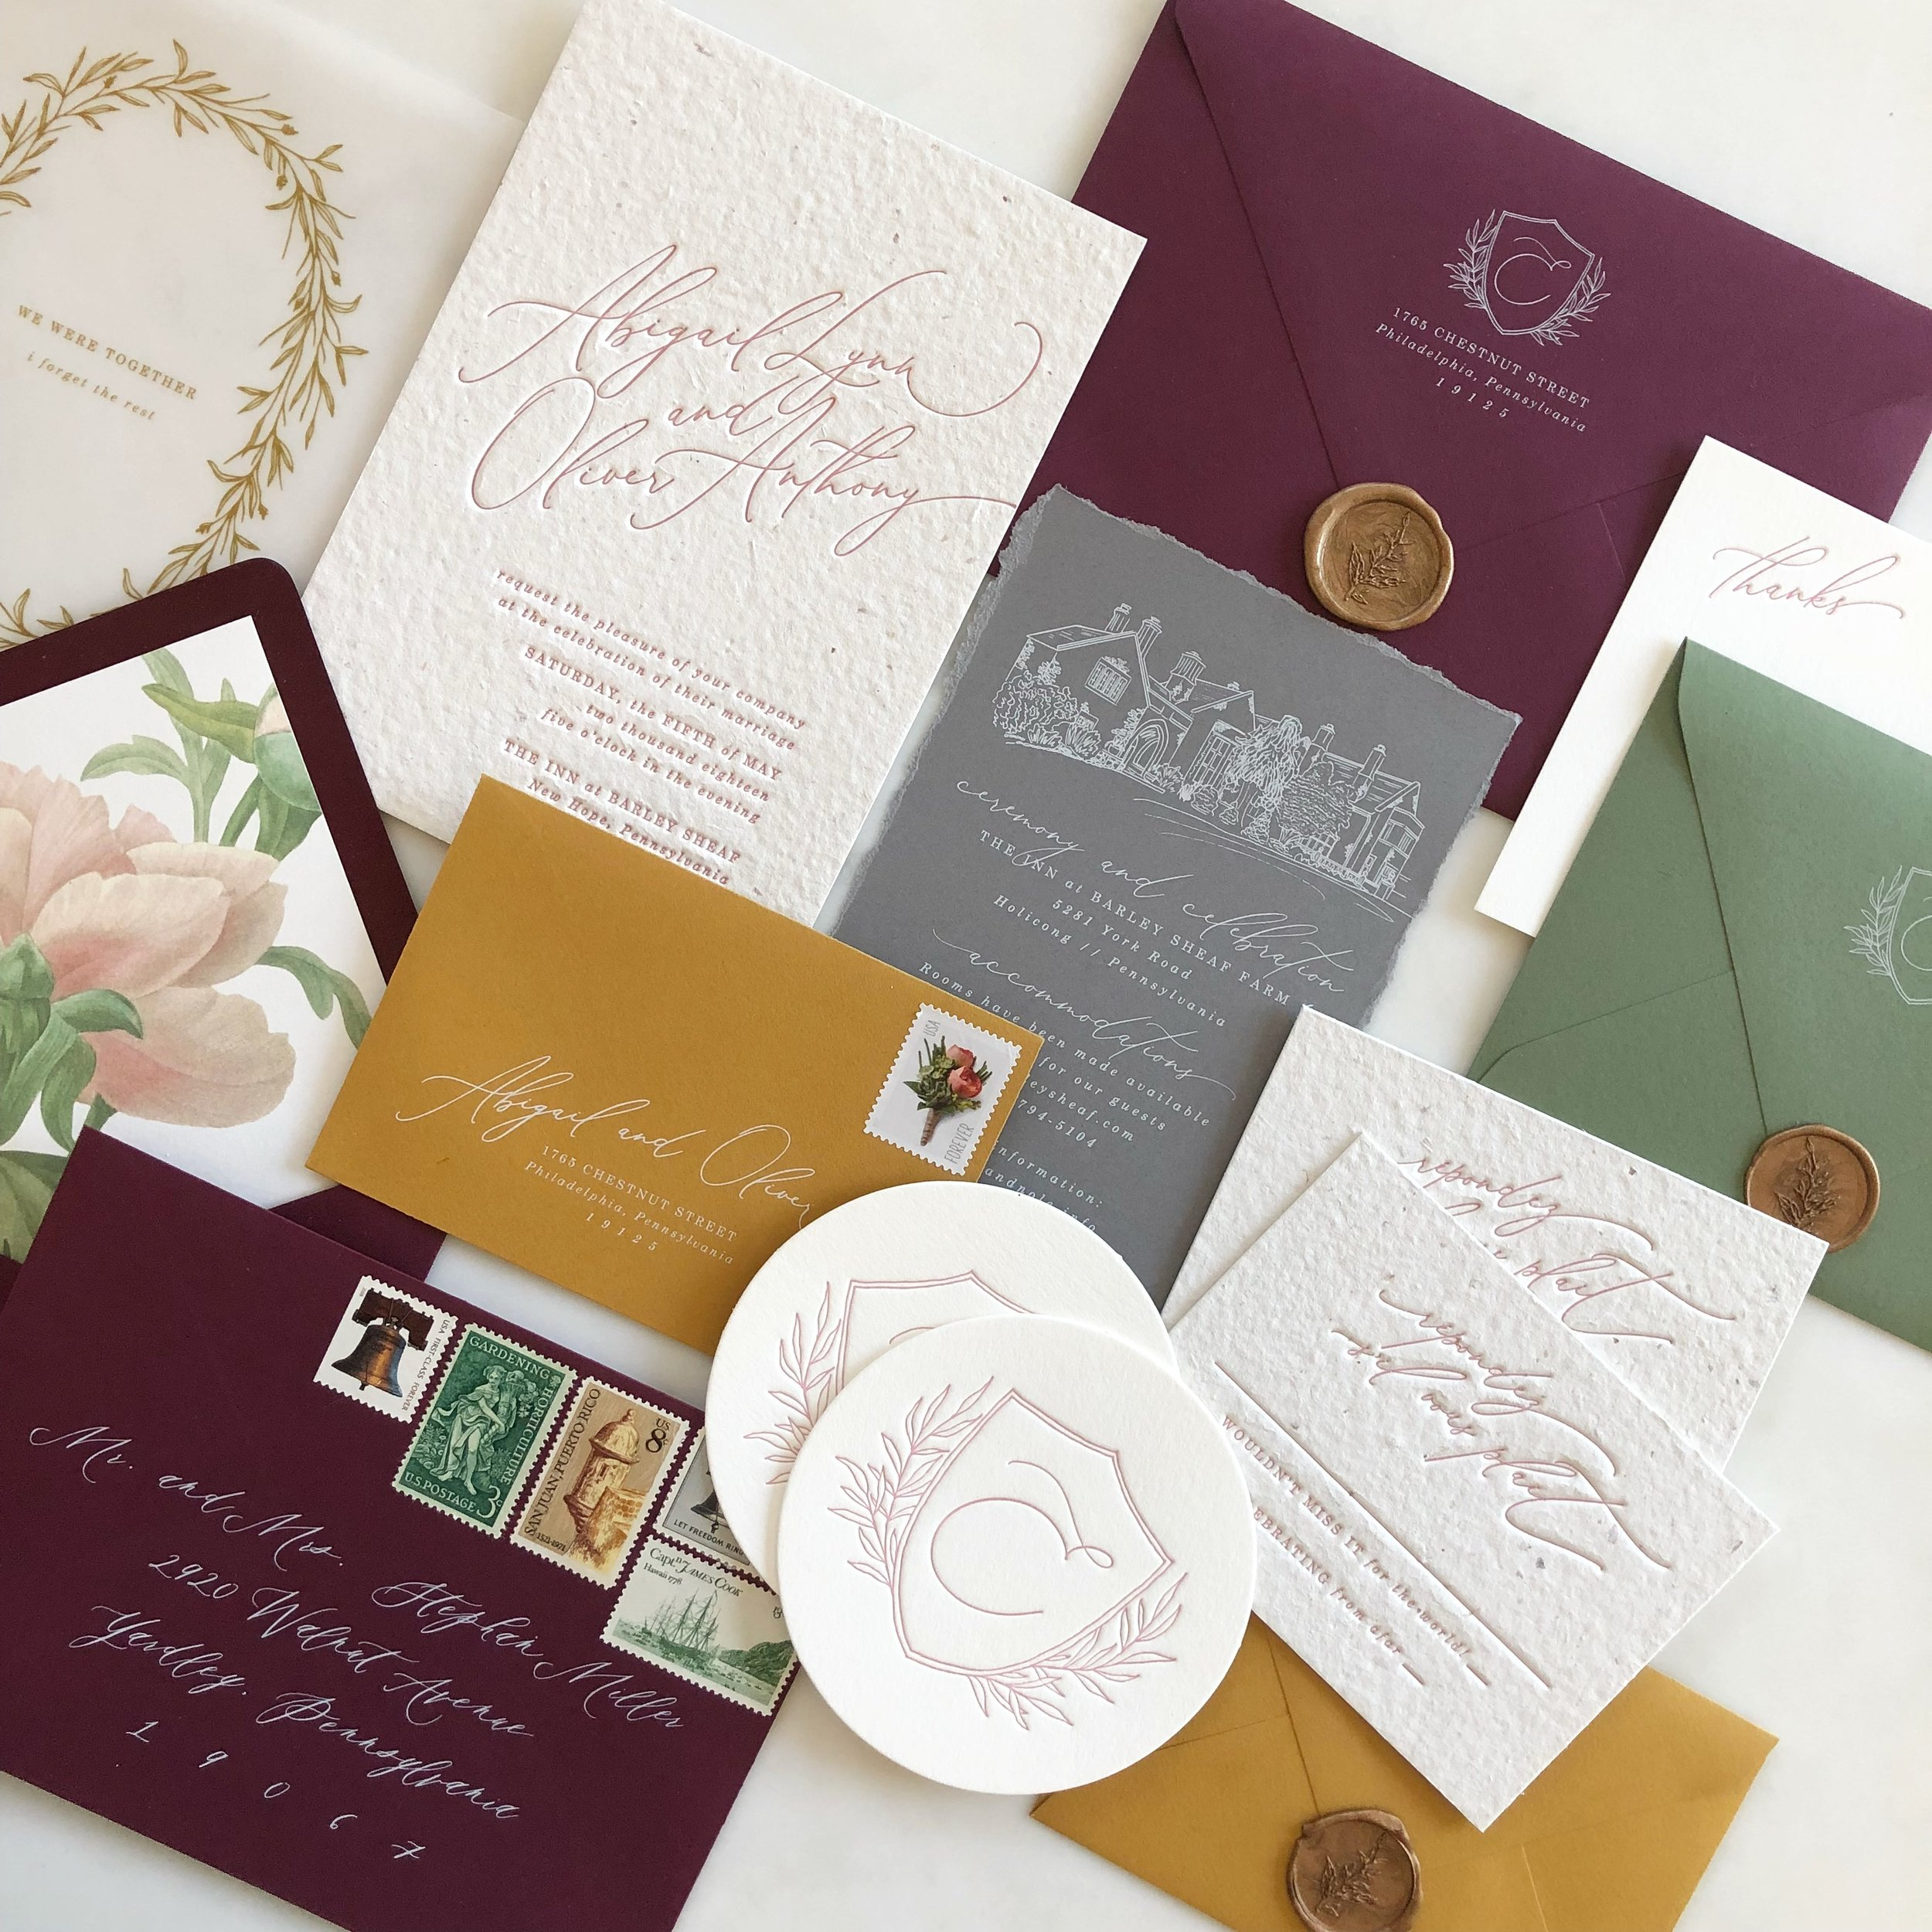 Venue Sketch, Handmade Paper, Wax Seals, White Ink Printing, Coasters, Vellum Insert